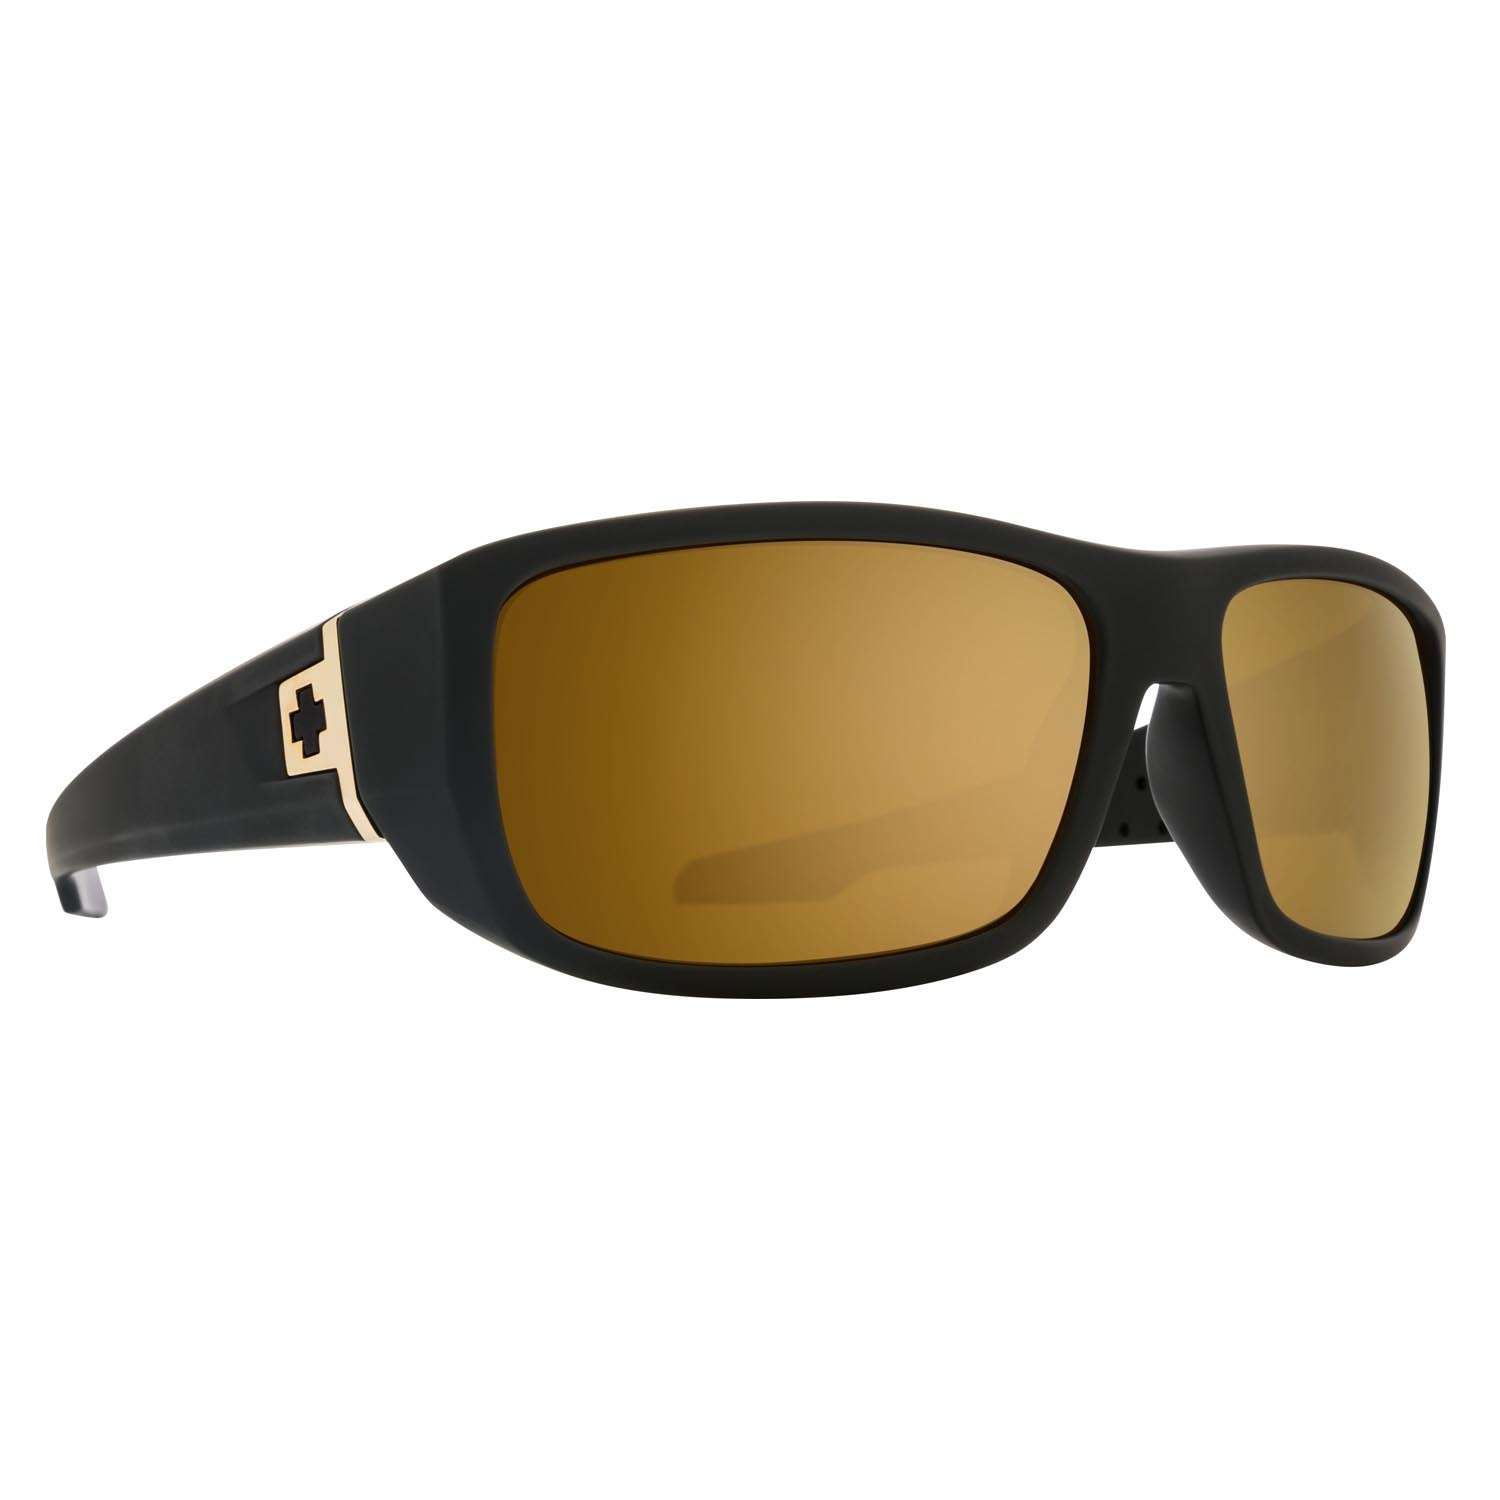 Spy Sunglasses mc3 in matte black with bronze gold spectra